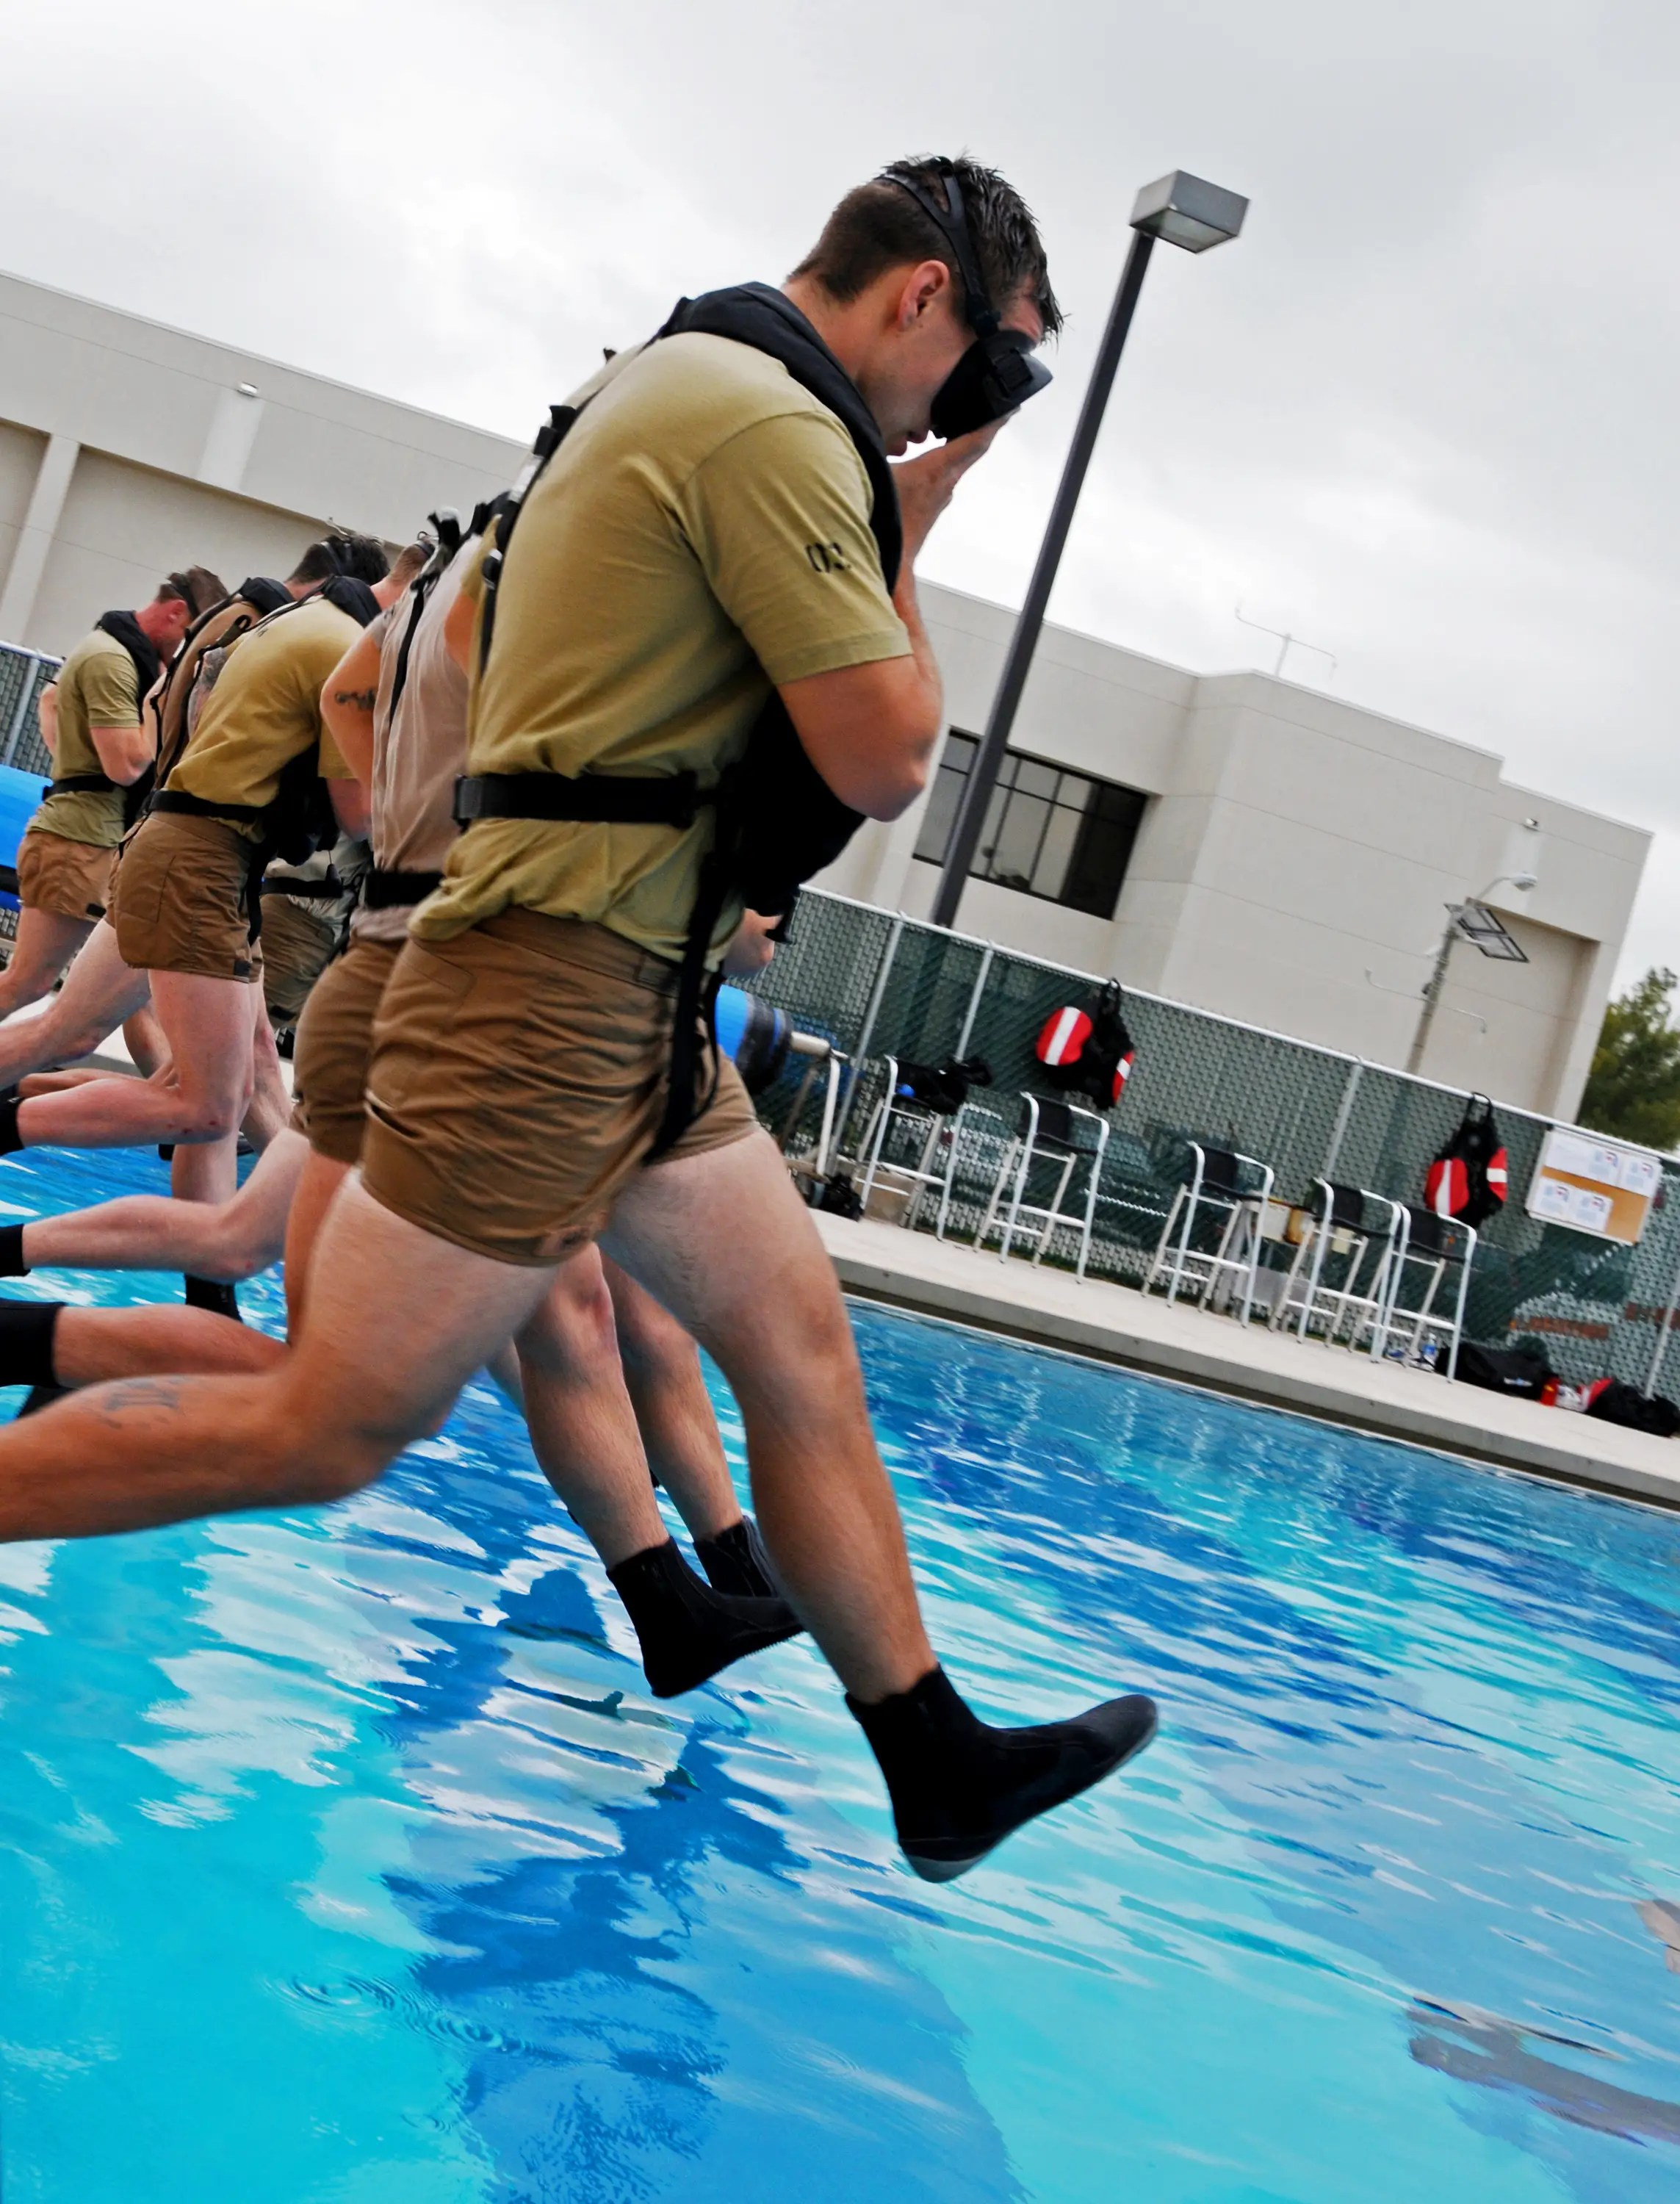 It's not only Navy SEALs in the water.